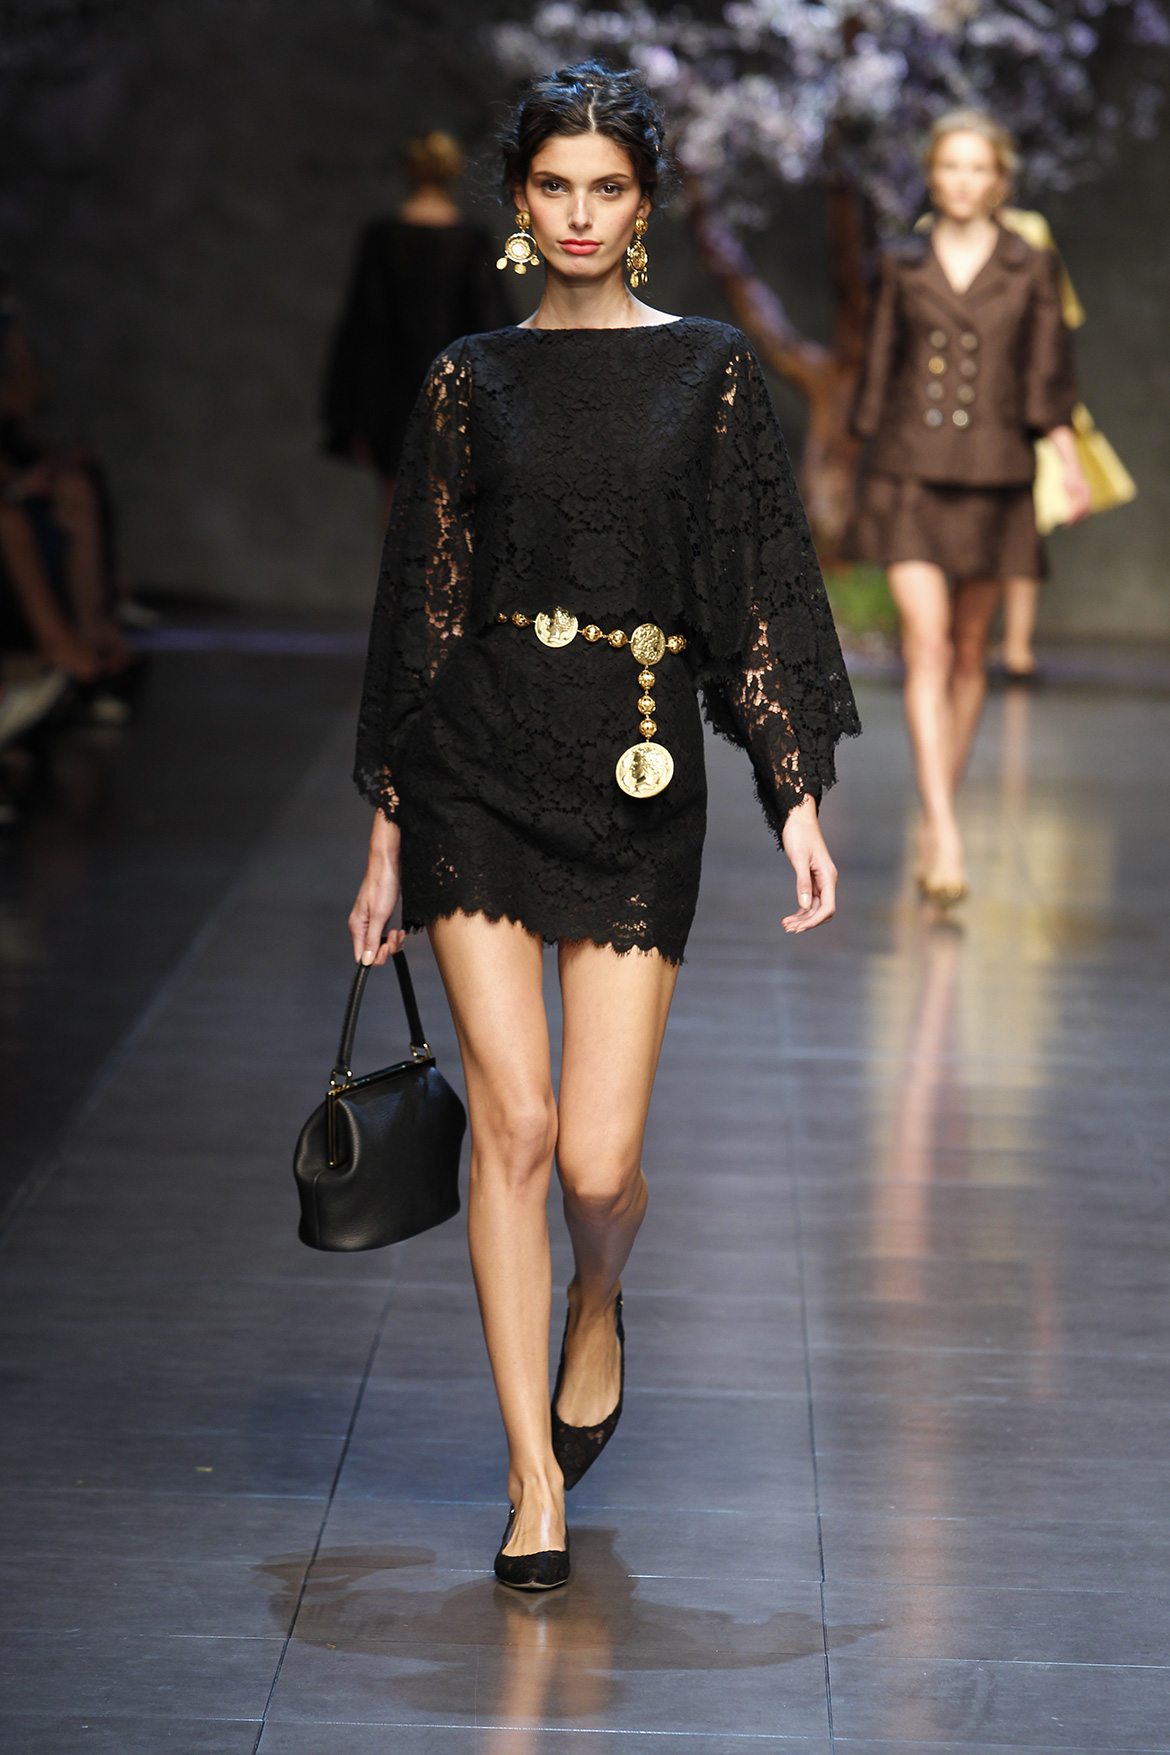 The Skimpy Is In Dolce Amp Gabbana And I Am Lovin It